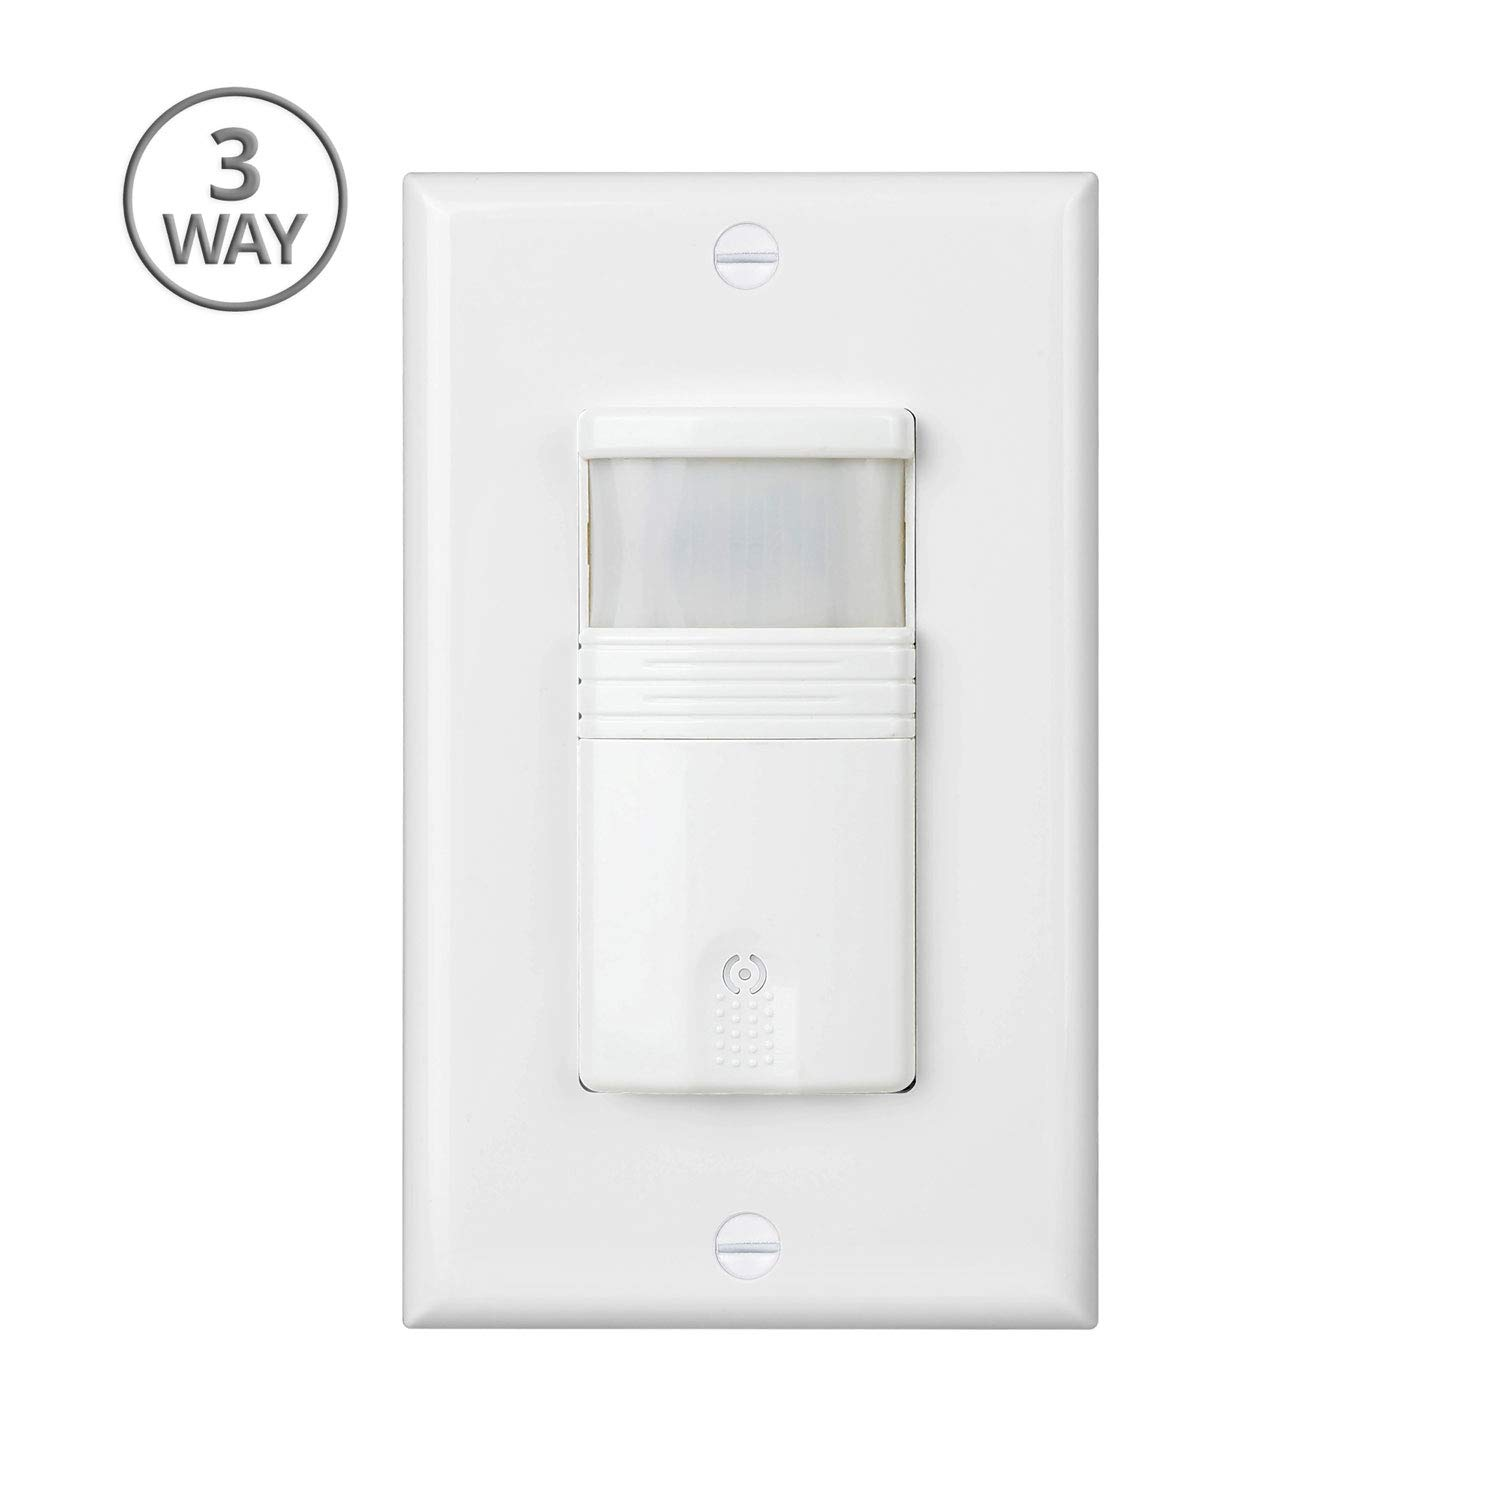 Pack Of 2 White 3 Way Motion Sensor Light Switch Neutral Wire Required For Indoor